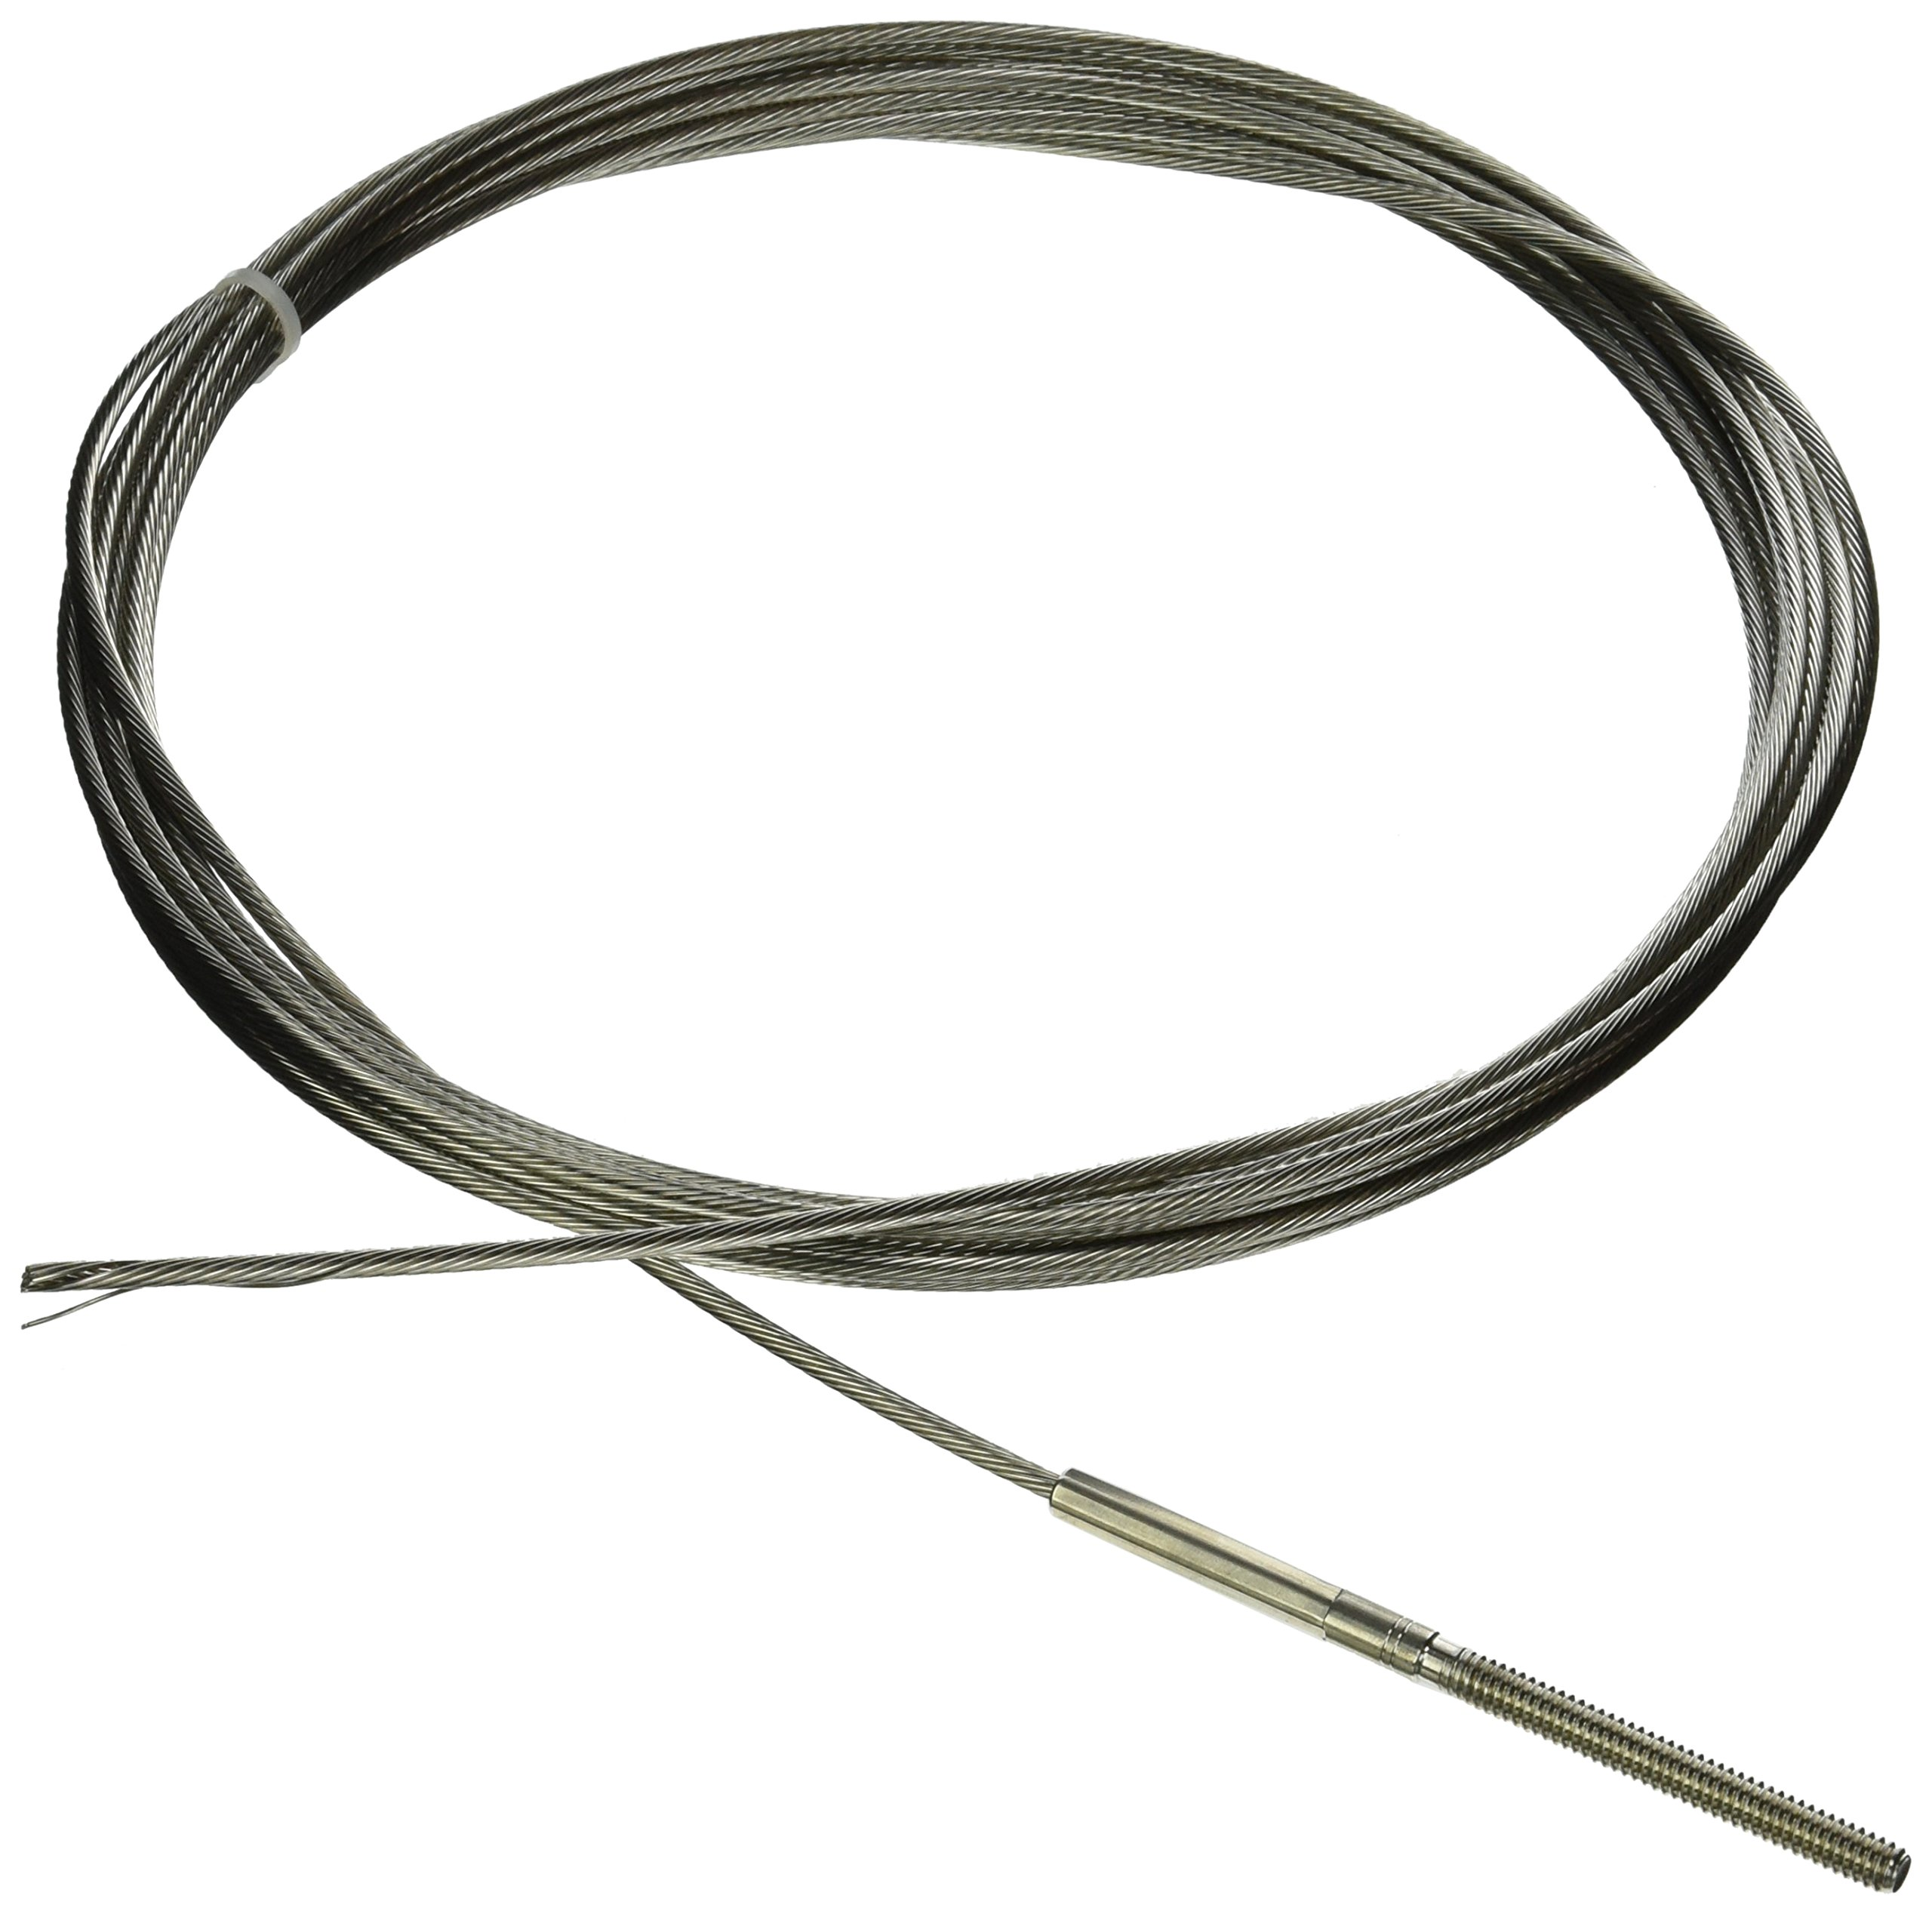 Feeney CR-6220 Cablerail Assemblies for Metal with 4 1/4 Terminal, 1/8, 20' (Pack of 1)